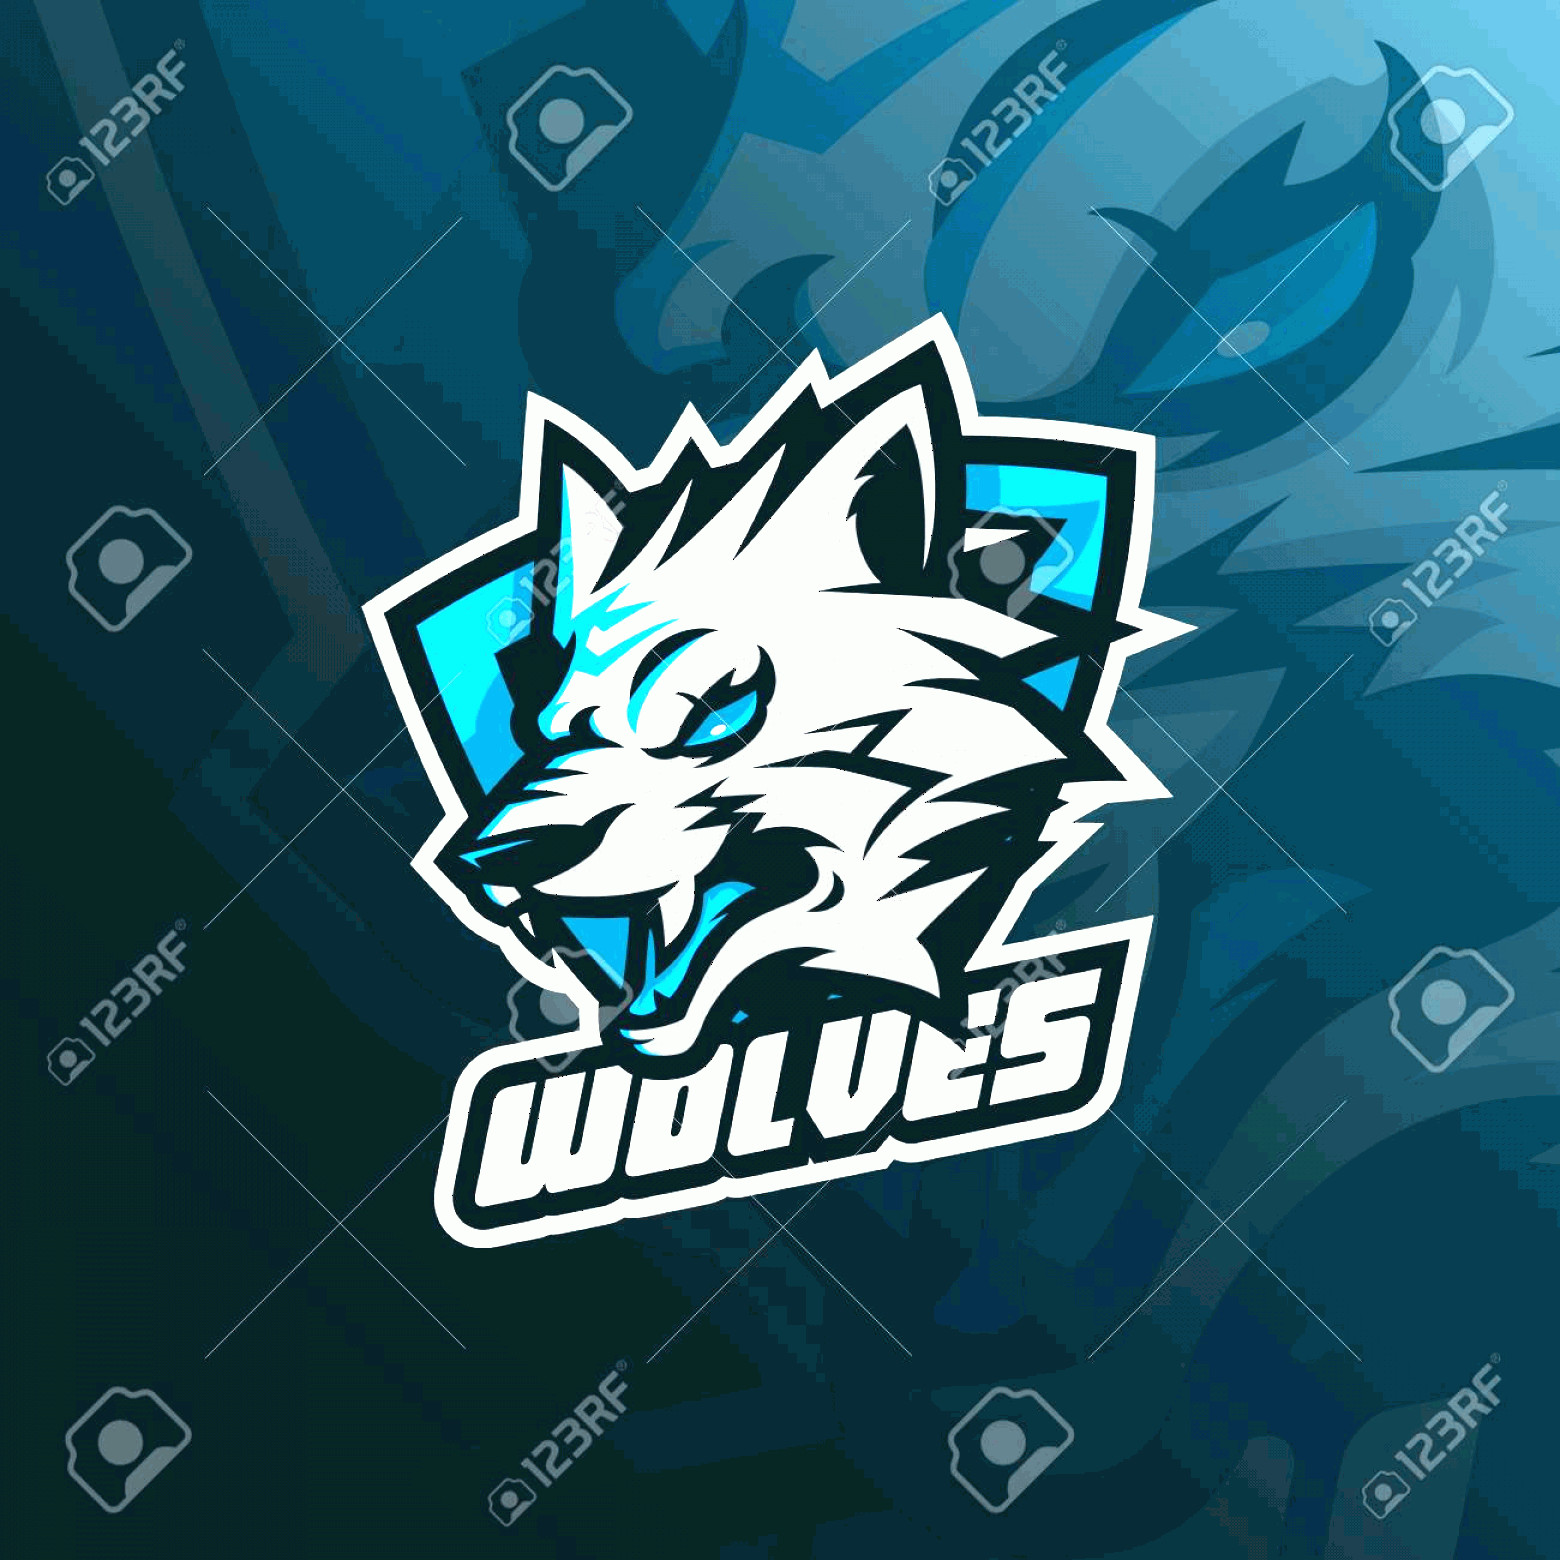 Wolf Vector Logo: Photostock Vector Wolf Vector Mascot Logo Design With Modern Illustration Concept Style For Badge Emblem And Tshirt Pr